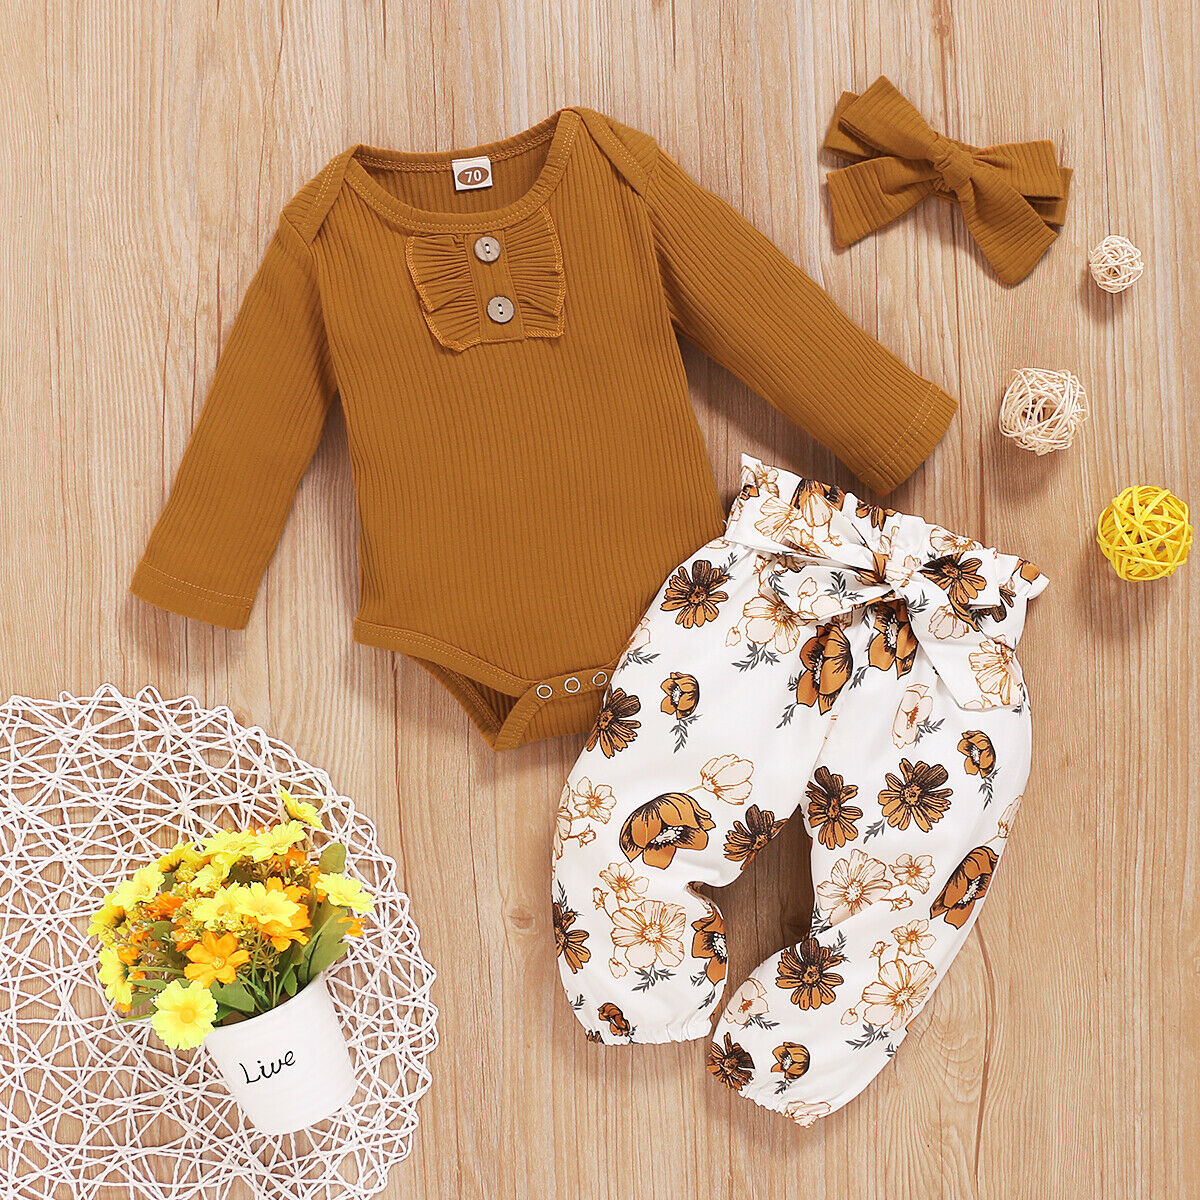 Toddler Baby Girl Clothes Romper Tops Jumpsuit Floral Pants Headband Outfits Set